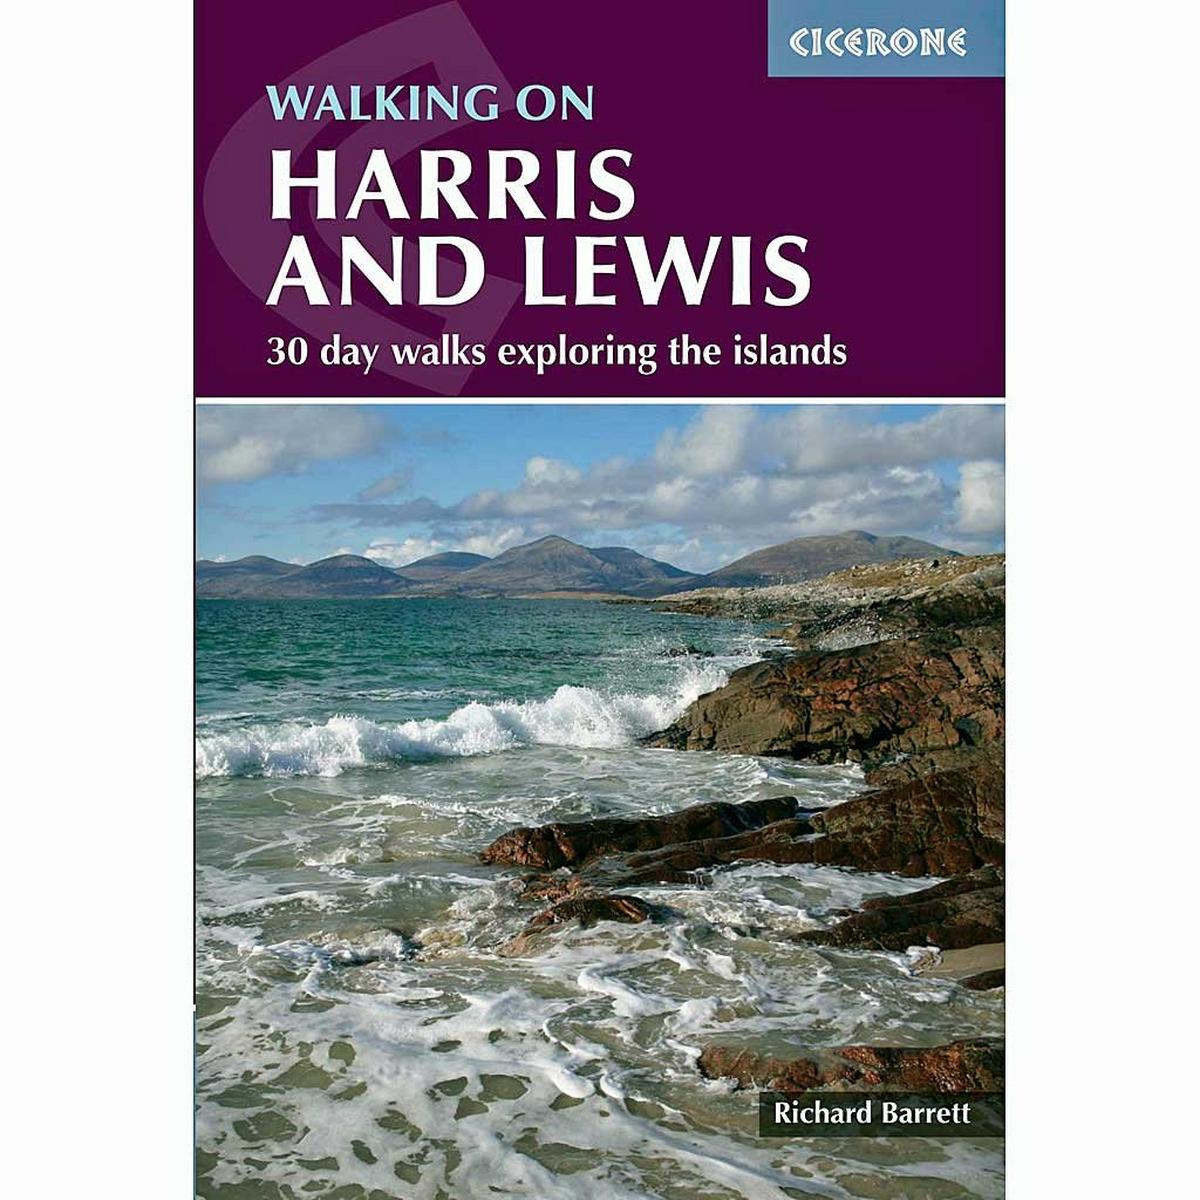 Cicerone Guide Book: Walking on Harris and Lewis